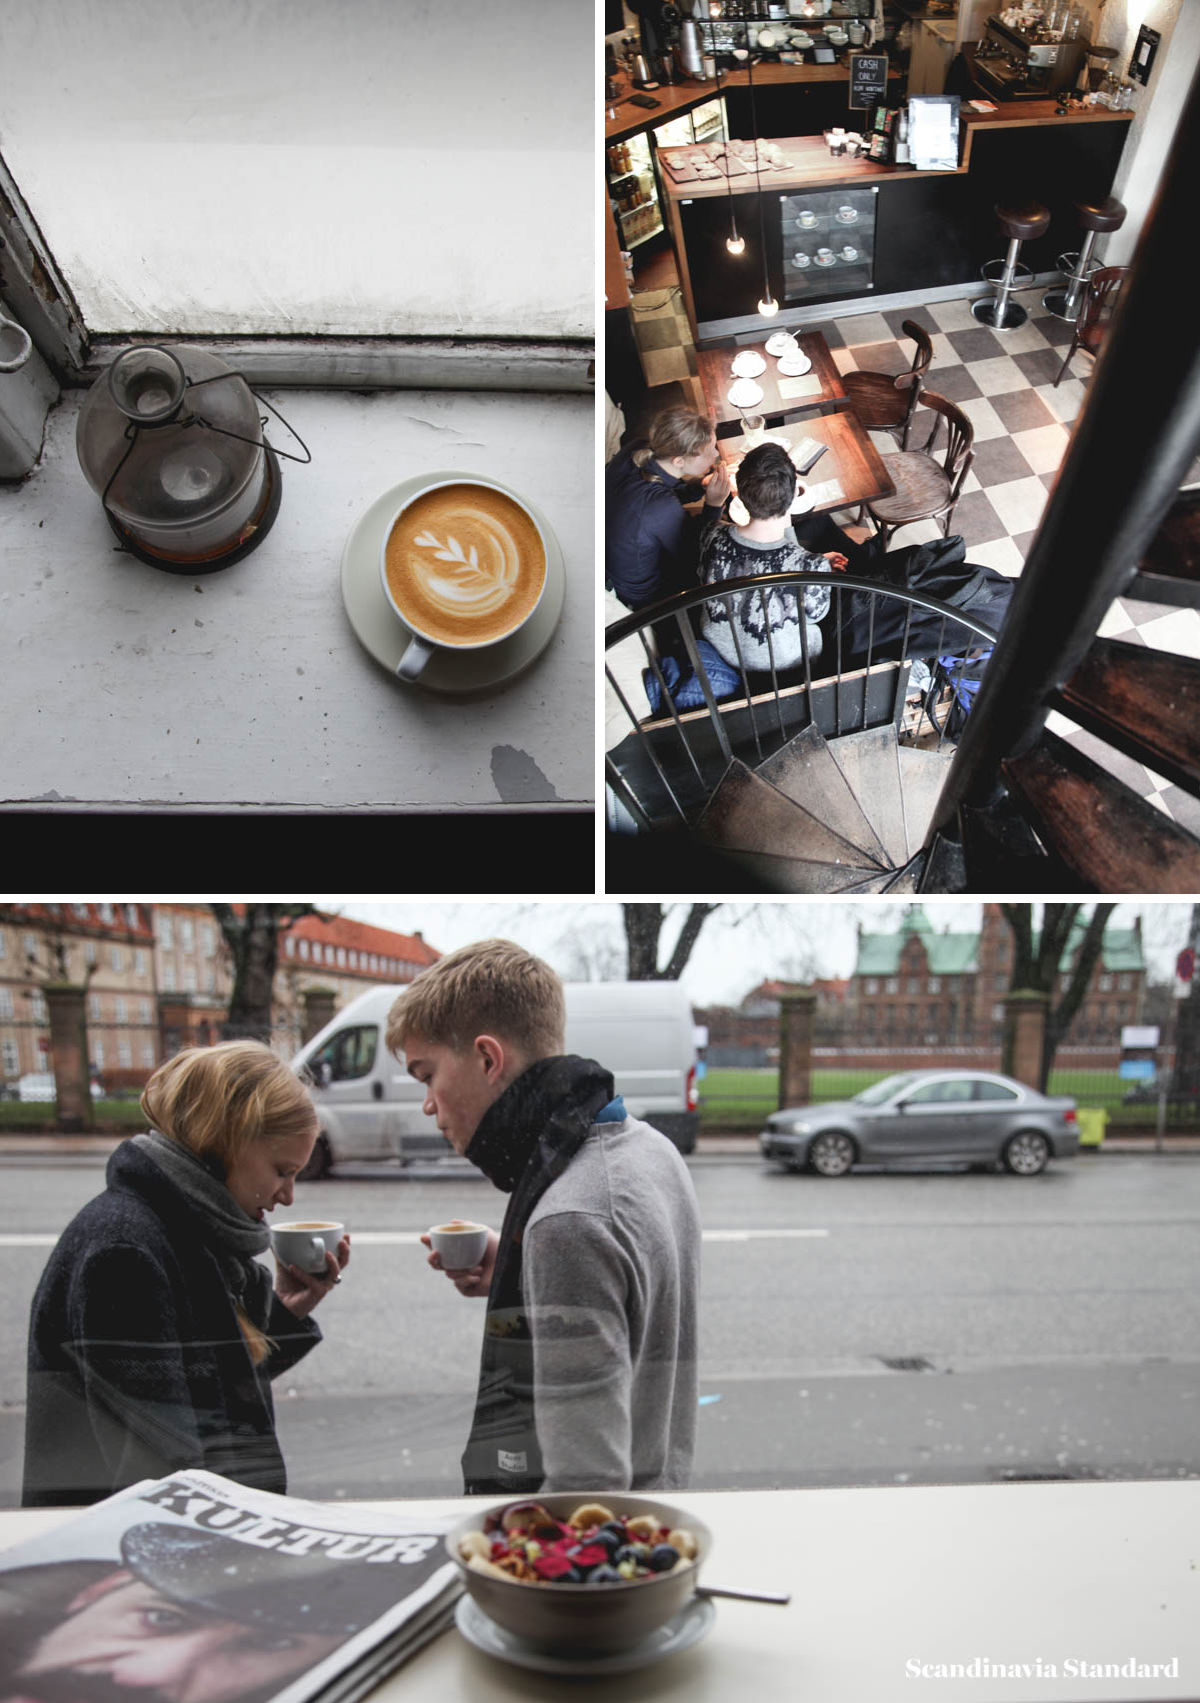 Best Coffee Shops - Cafe Det Vide Hus Collage | Scandinavia Standard